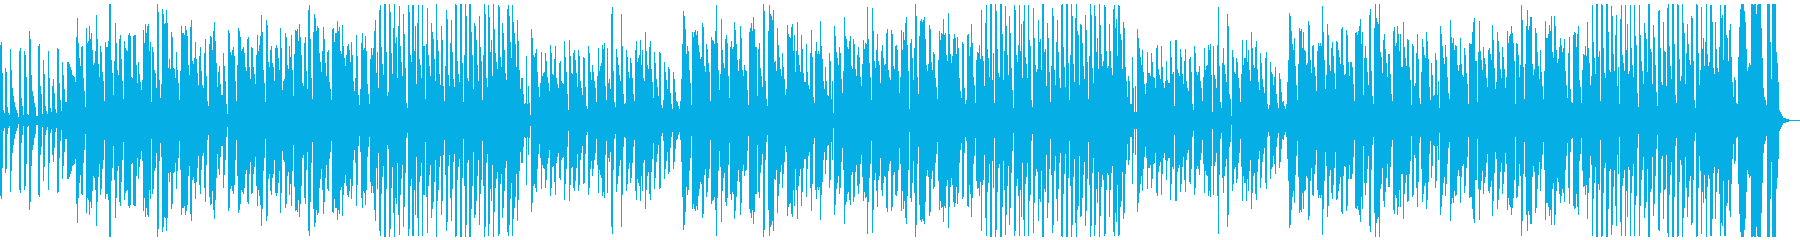 Music with the image of a Christmas market's reproduced waveform